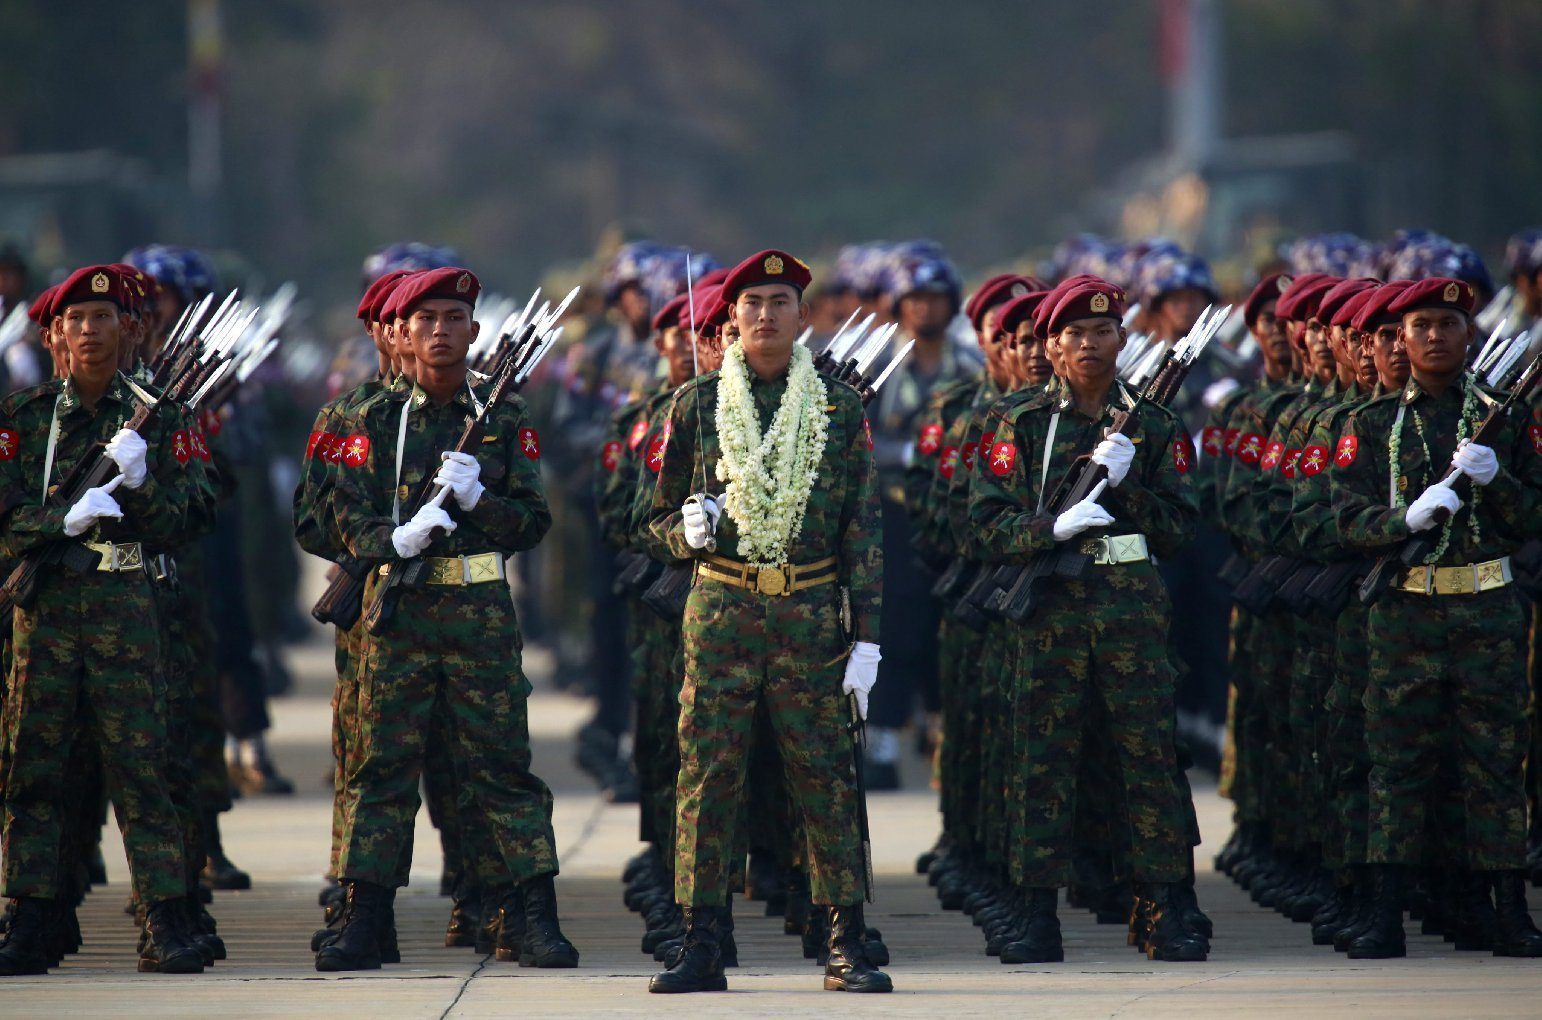 Image Myanmar military soldiers line up during the 70th Armed Forces Day in Naypyitaw, Myanmar, 27 March 2015 (Photo: Lynn Bo Bo/EPA)